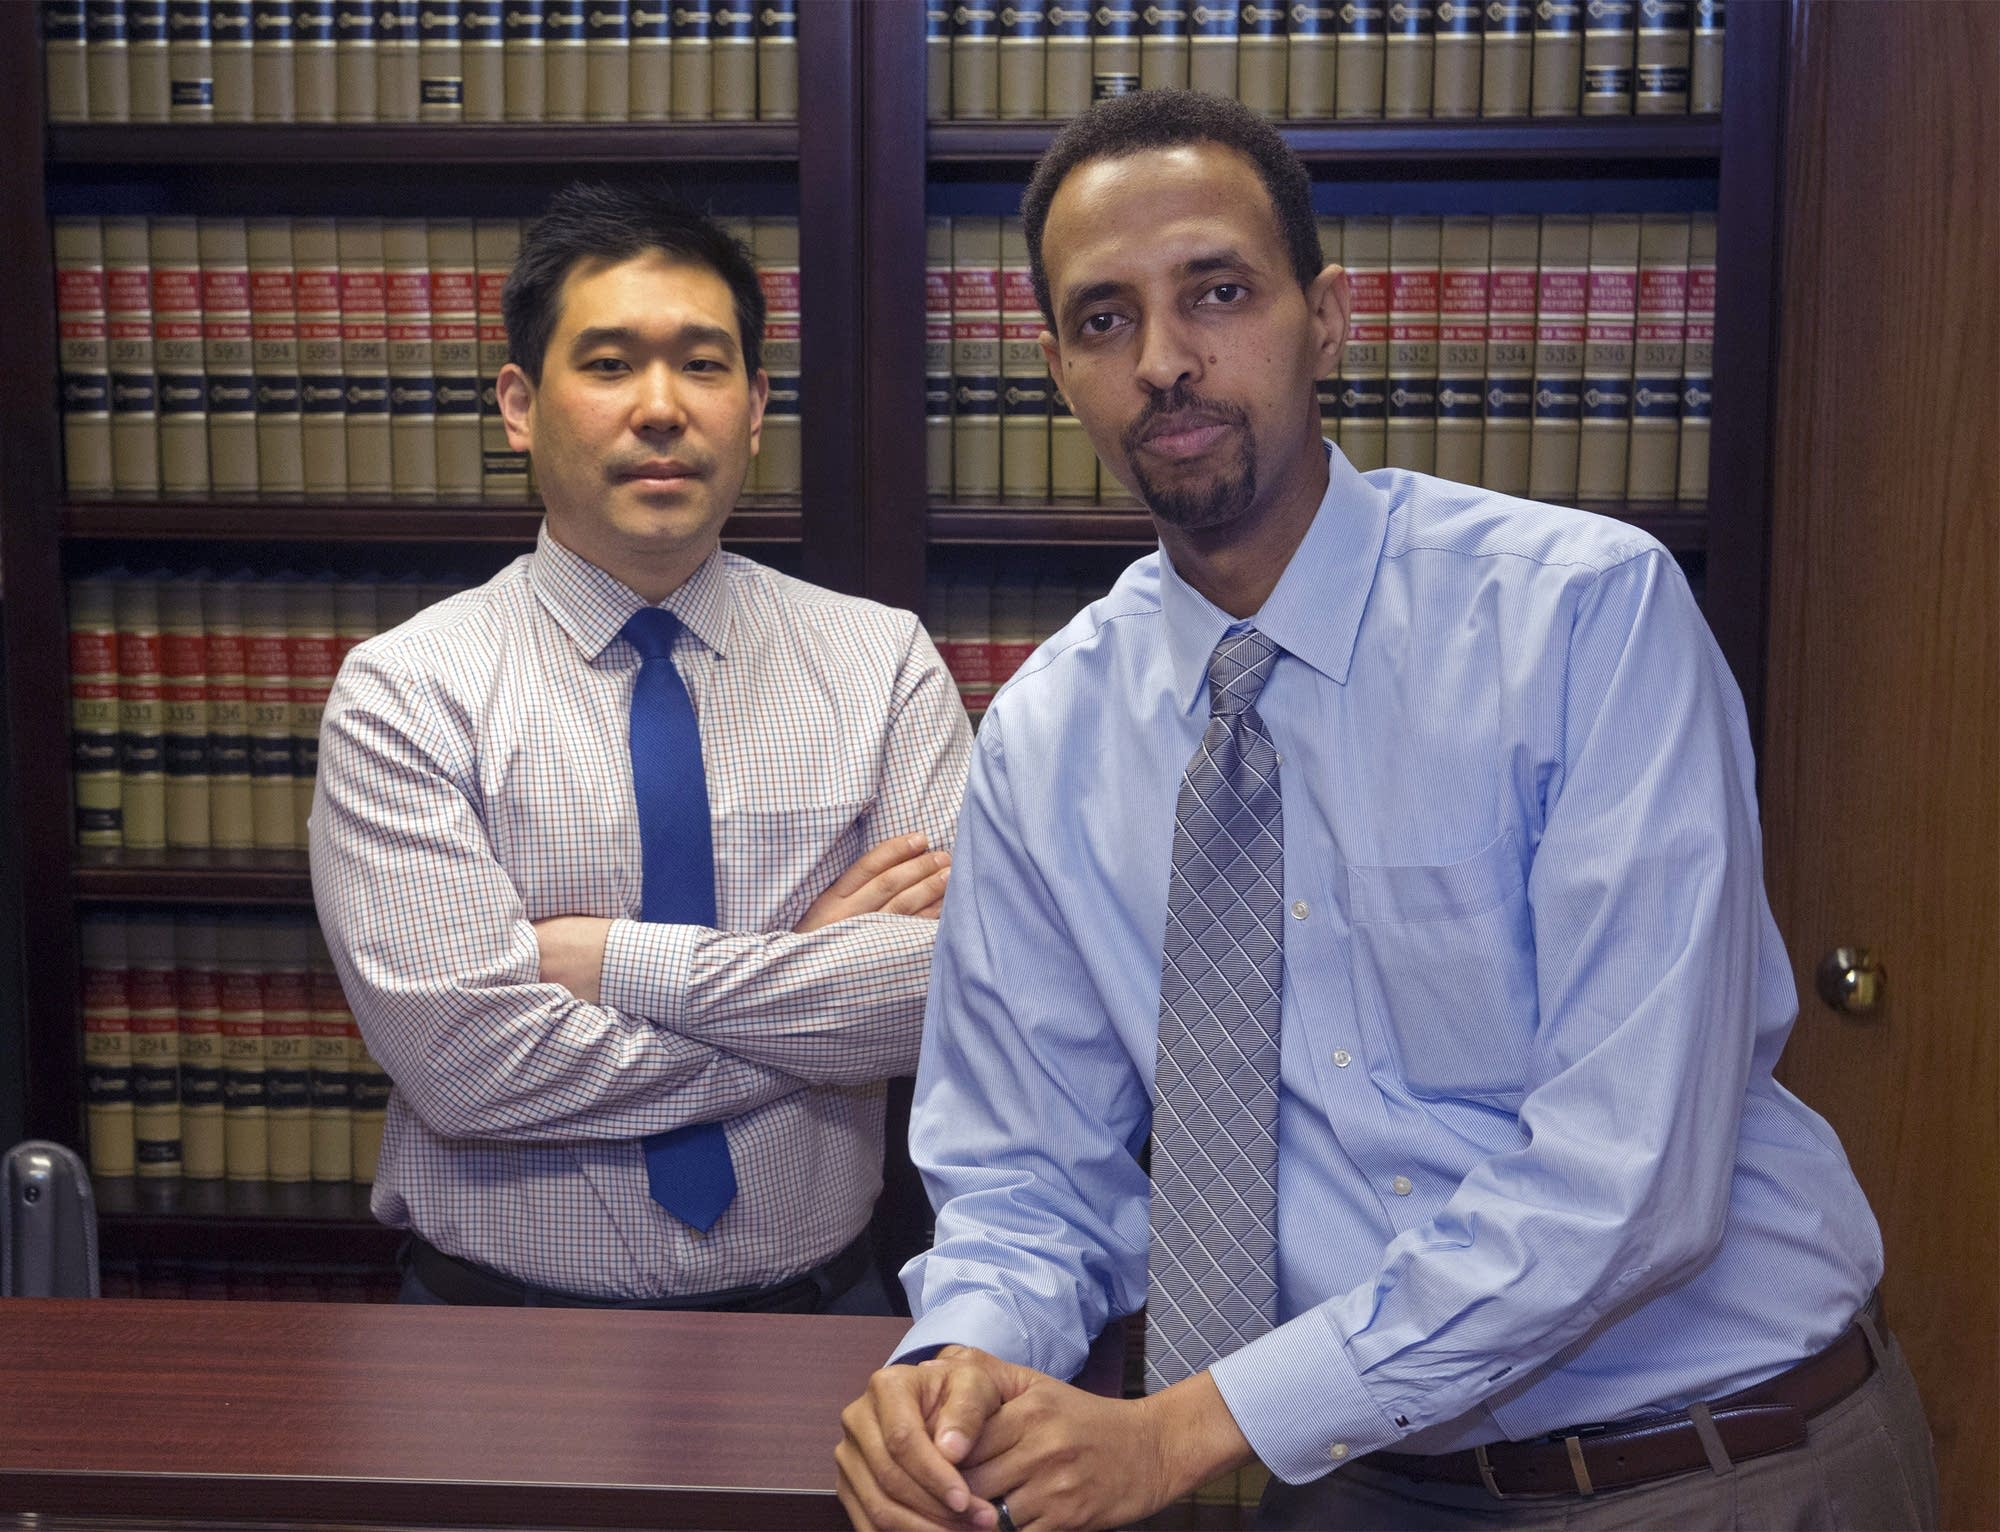 Christopher Lee and Abdinasir Abdulahi, attorneys at AMA Law Group